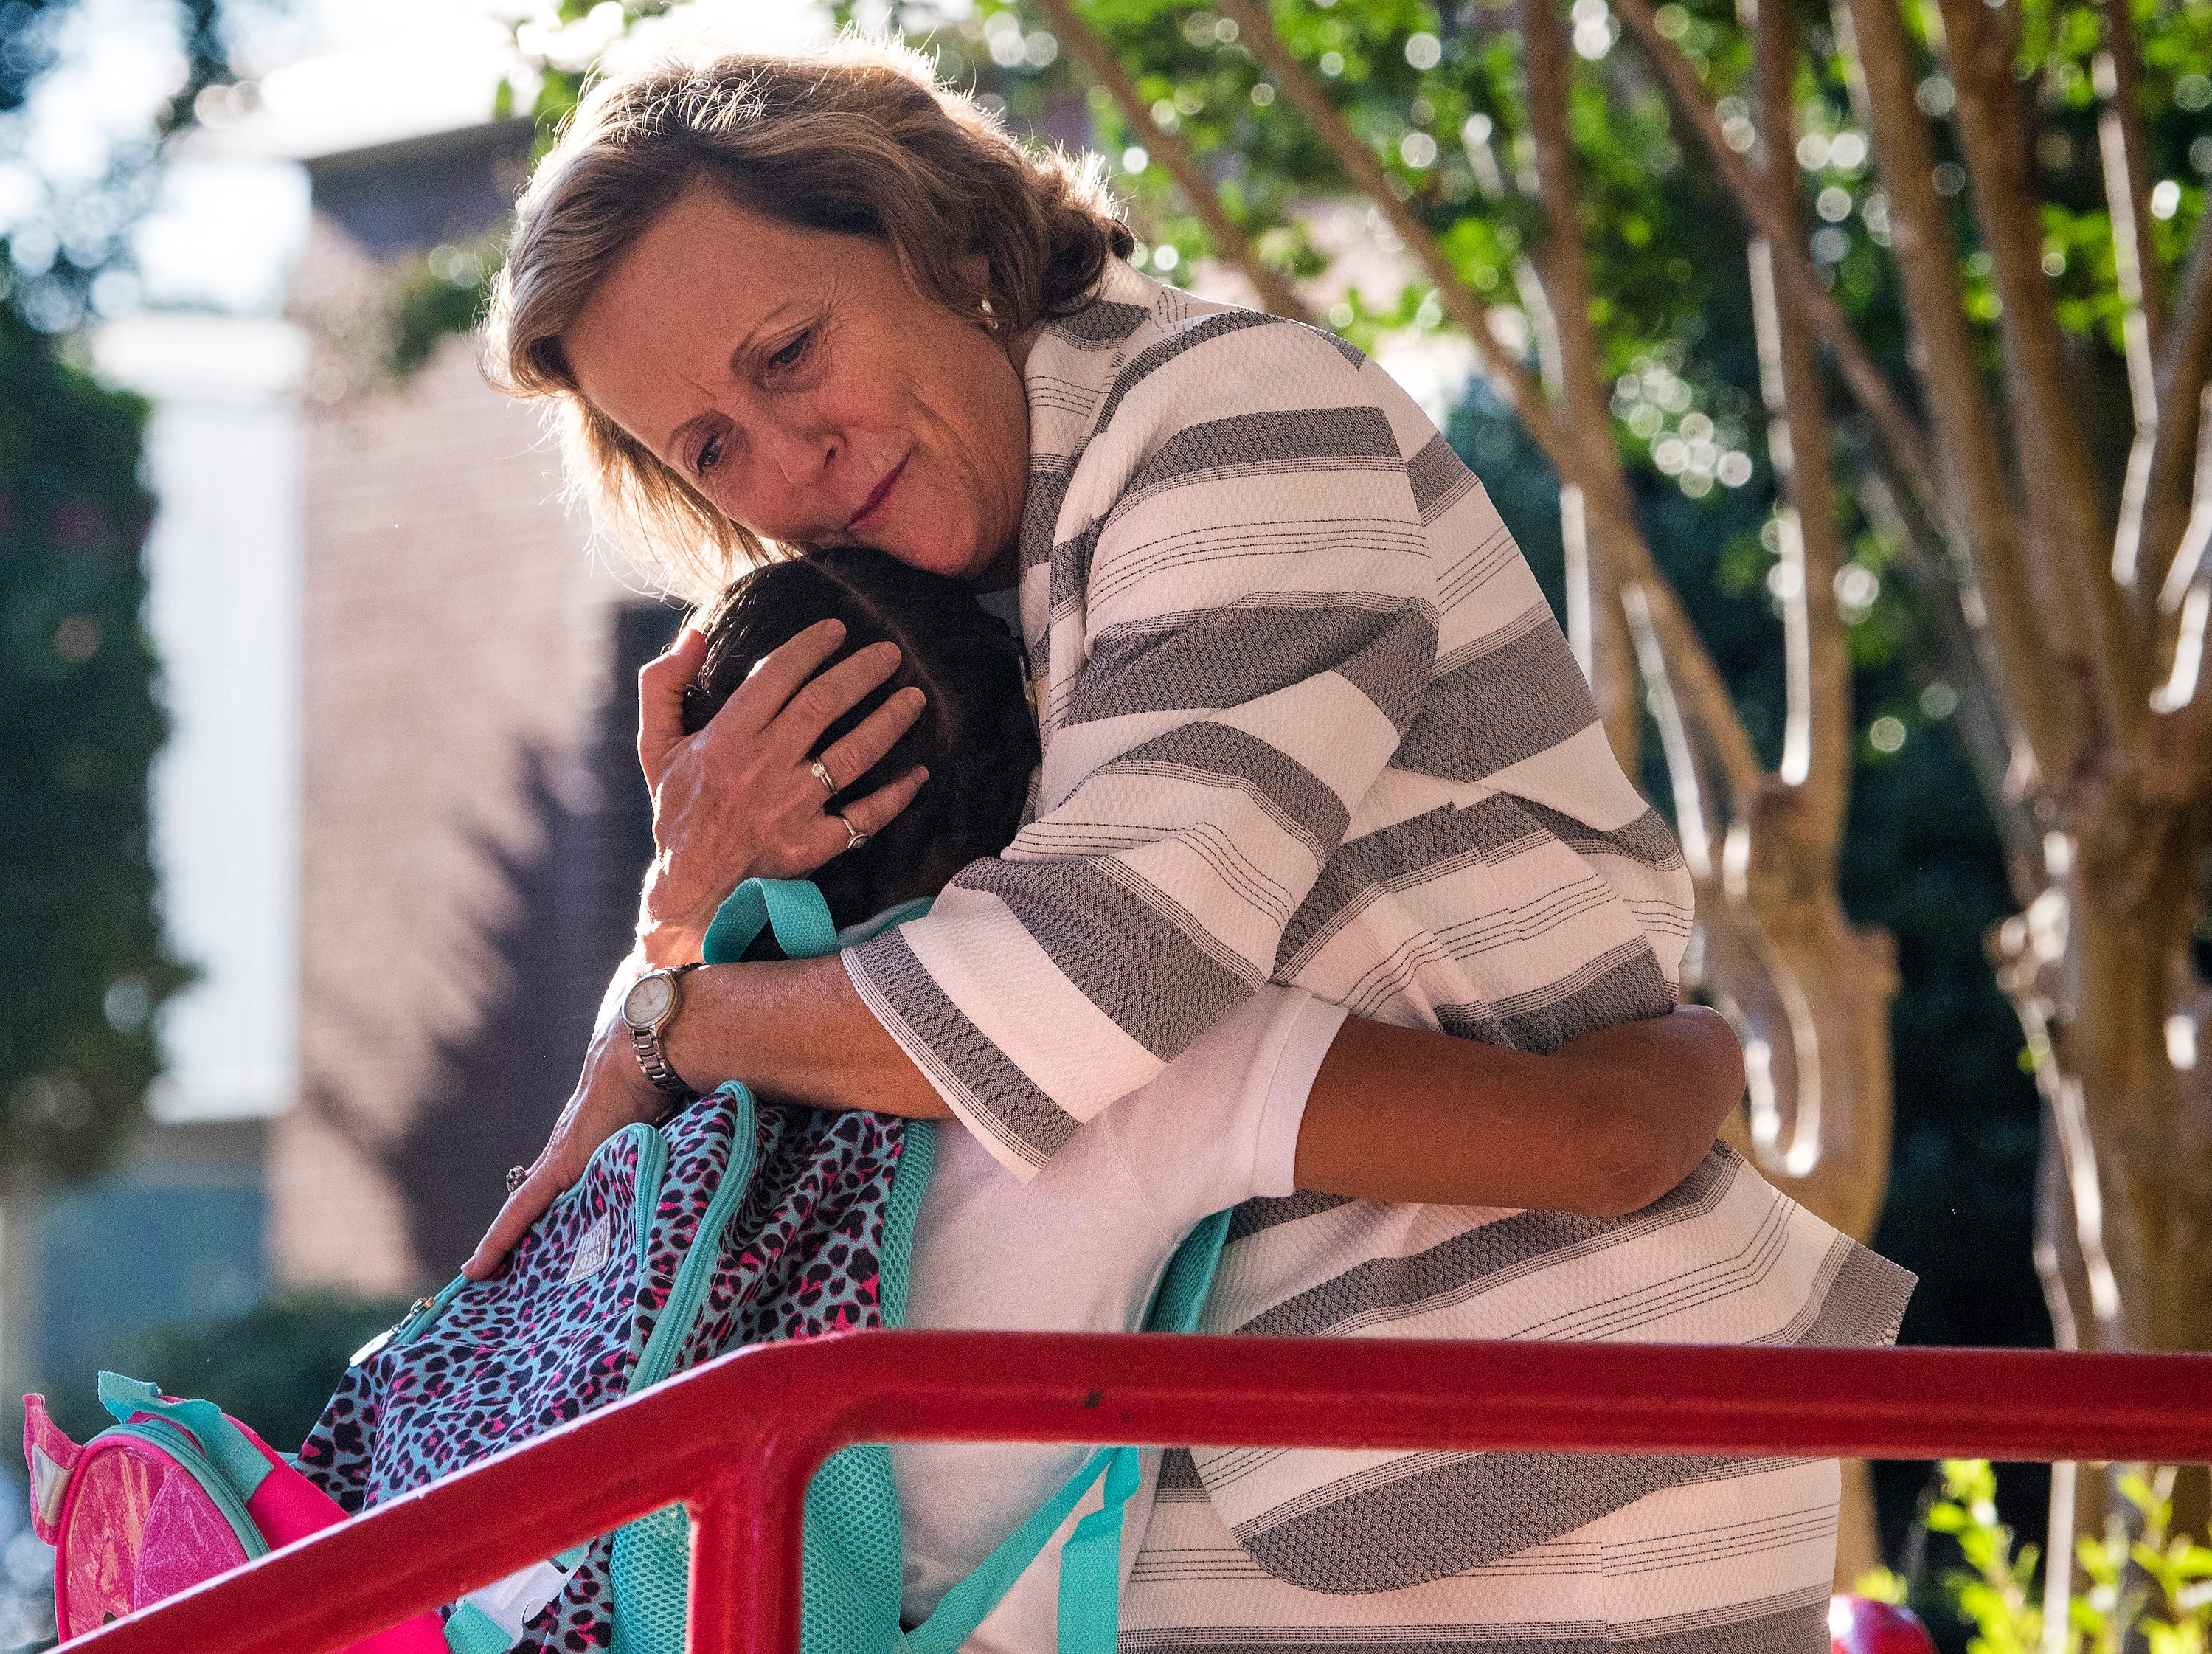 Flowers Elementary School principal Ethel Barnes hugs students as they arrive for the first day of classes at Montgomery Public Schools in Montgomery, Ala., on Monday, August 6, 2018.